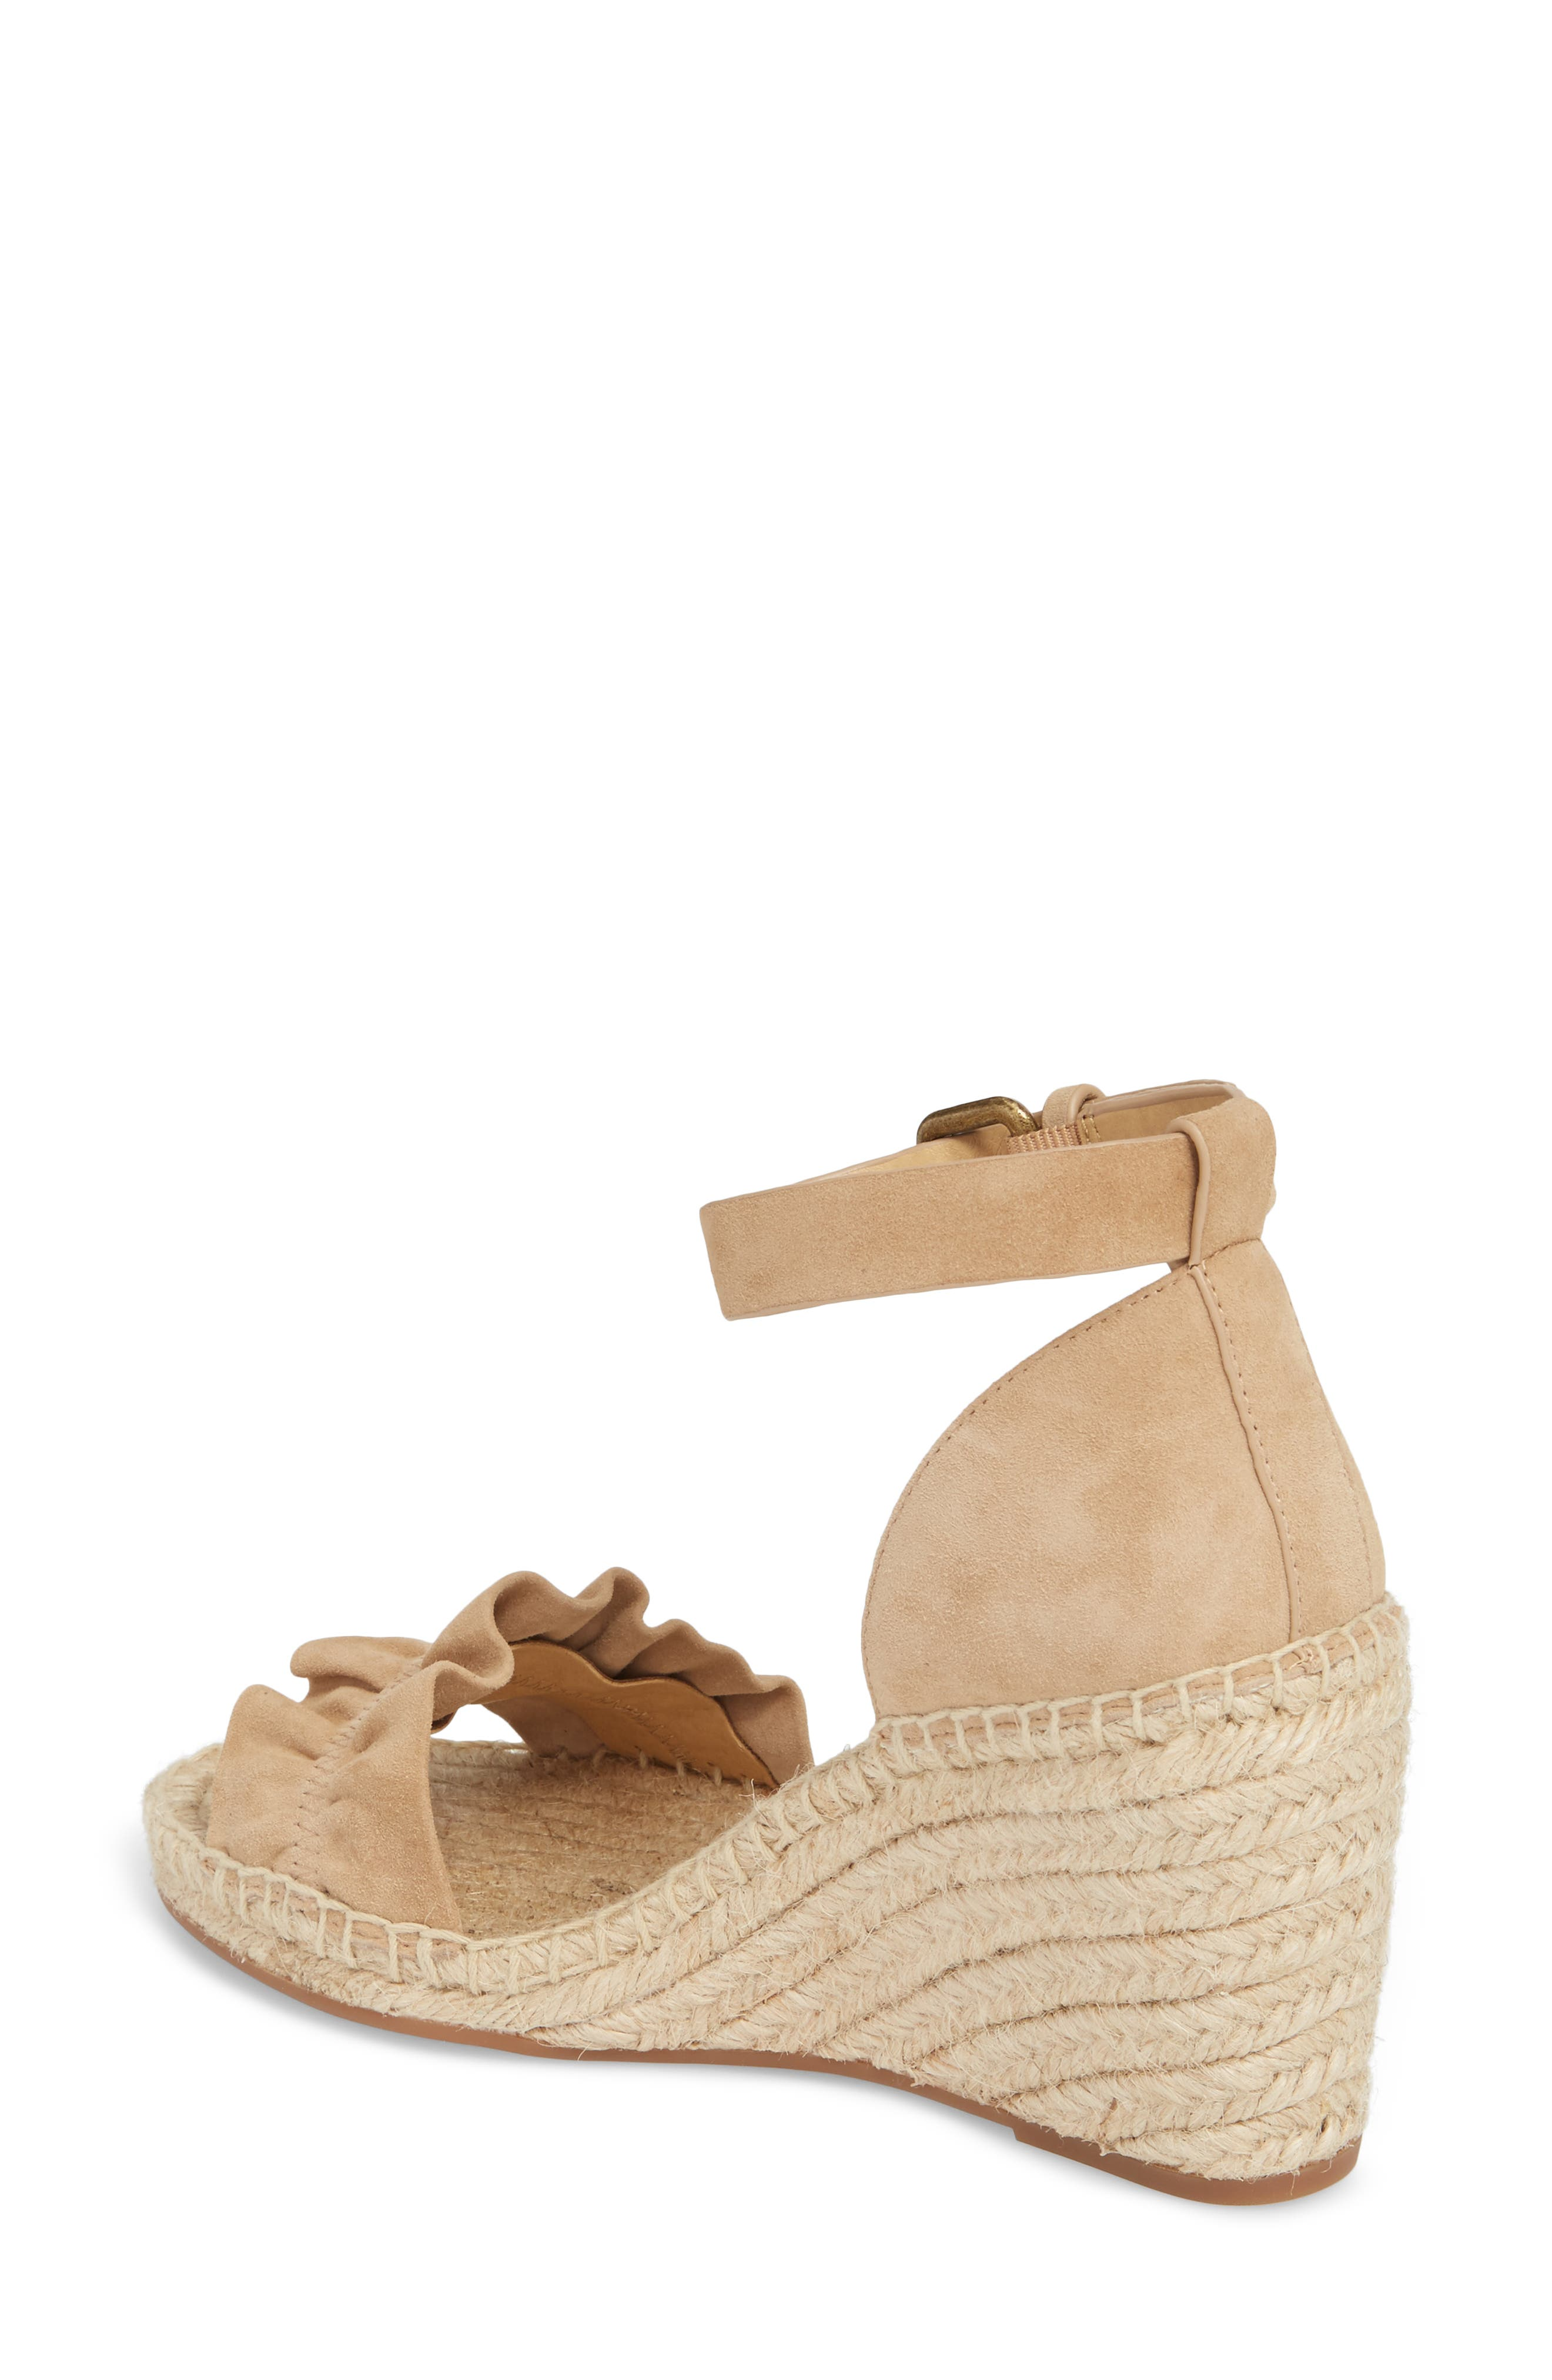 Bedford Espadrille Wedge Sandal,                             Alternate thumbnail 2, color,                             021